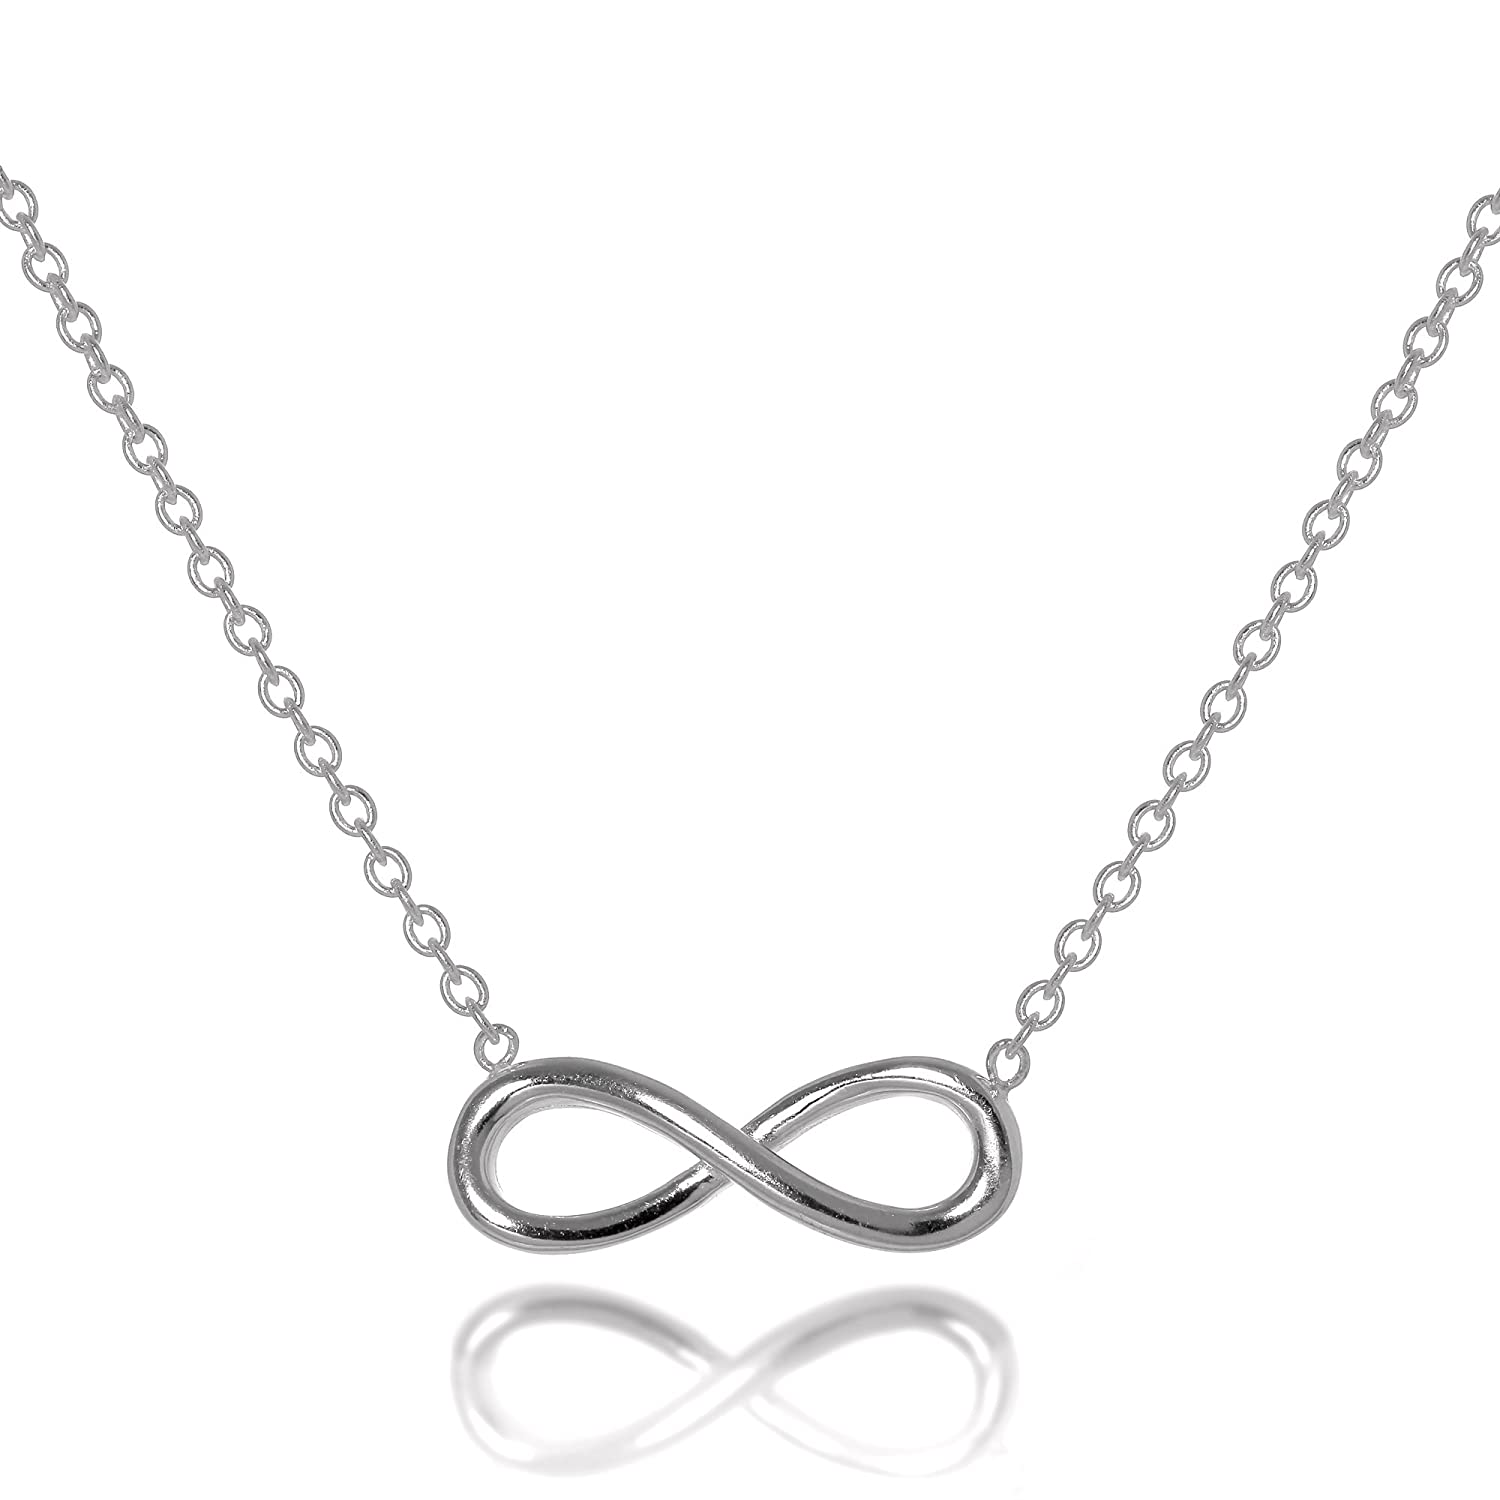 1c1c3fe039da1 Sterling Silver Infinity Necklace 16-18 Inch Chain  Amazon.co.uk  Jewellery